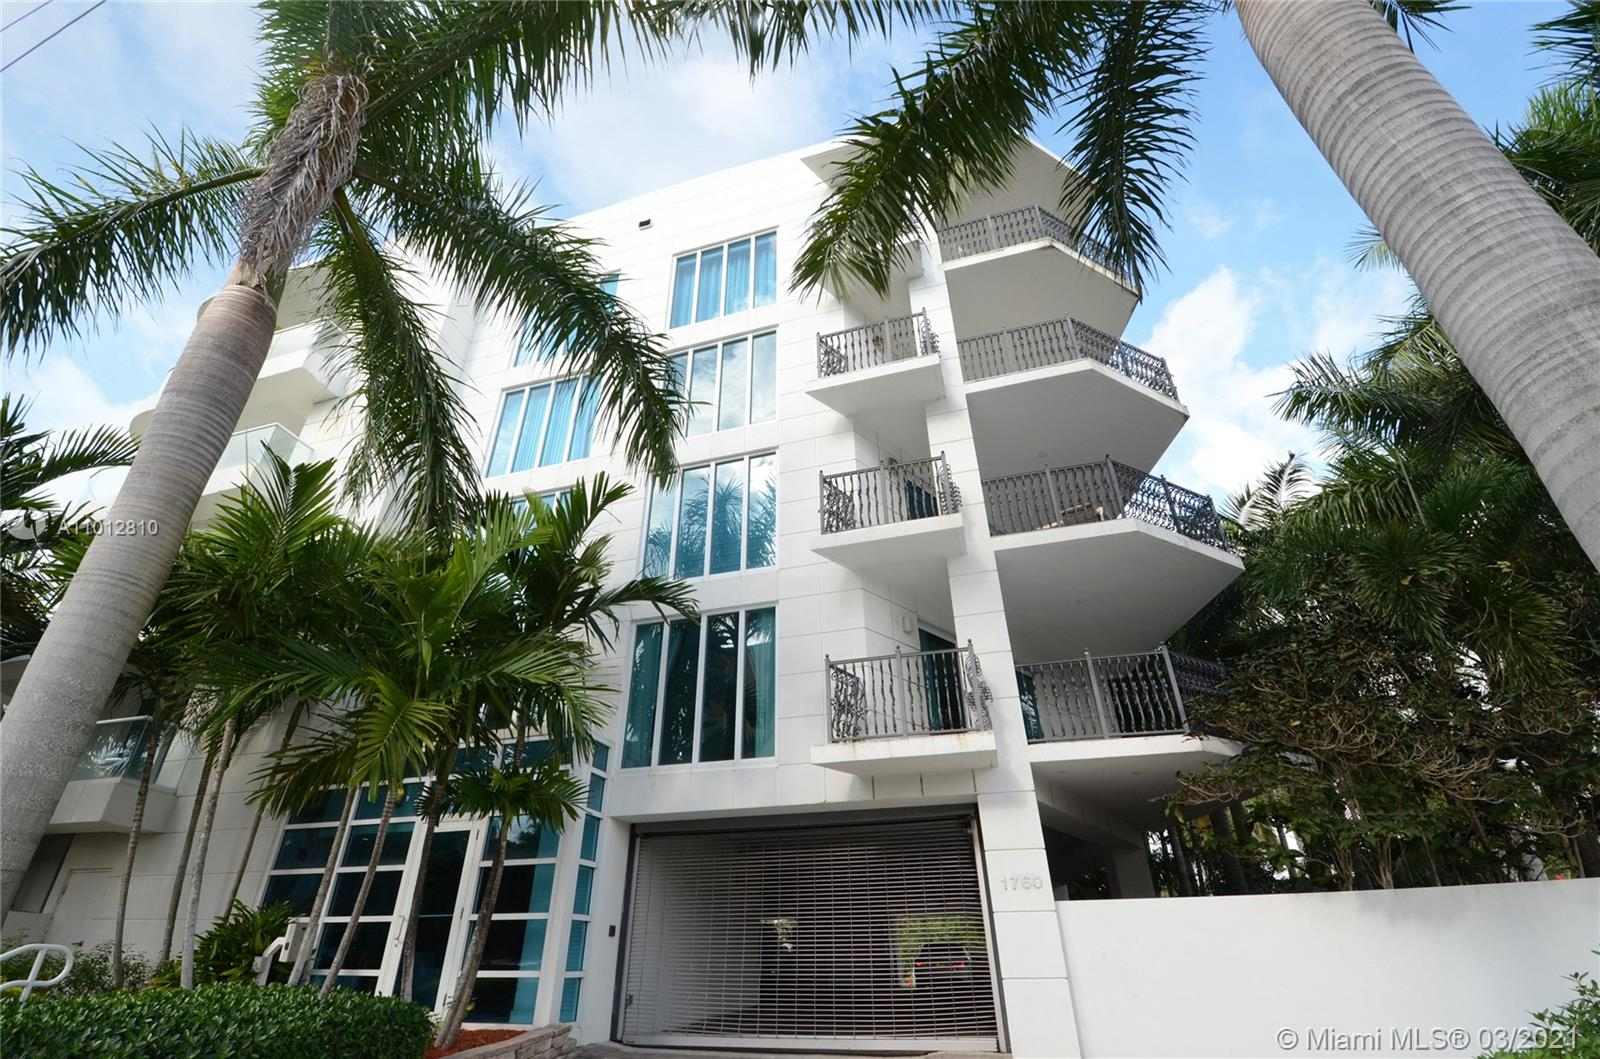 Fabulous waterfront residence with boat dock in boutique building on Las Olas. Walk into this panoramic residence from your privately keyed elevator to the spectacular waterfront views of Las Olas Isles. A gourmet, chef's kitchen w/gas stove, Sub Zero & Miele appliances and wine cooler, spa style master bath w/rainforest shower, infinity edged bathtub & his and her water closets. Media room/guest room can be converted to 4th bedroom, 2 garage spaces, heated lap pool & fitness center. Only one unit per floor. Can easily be made into 4 bedrooms.